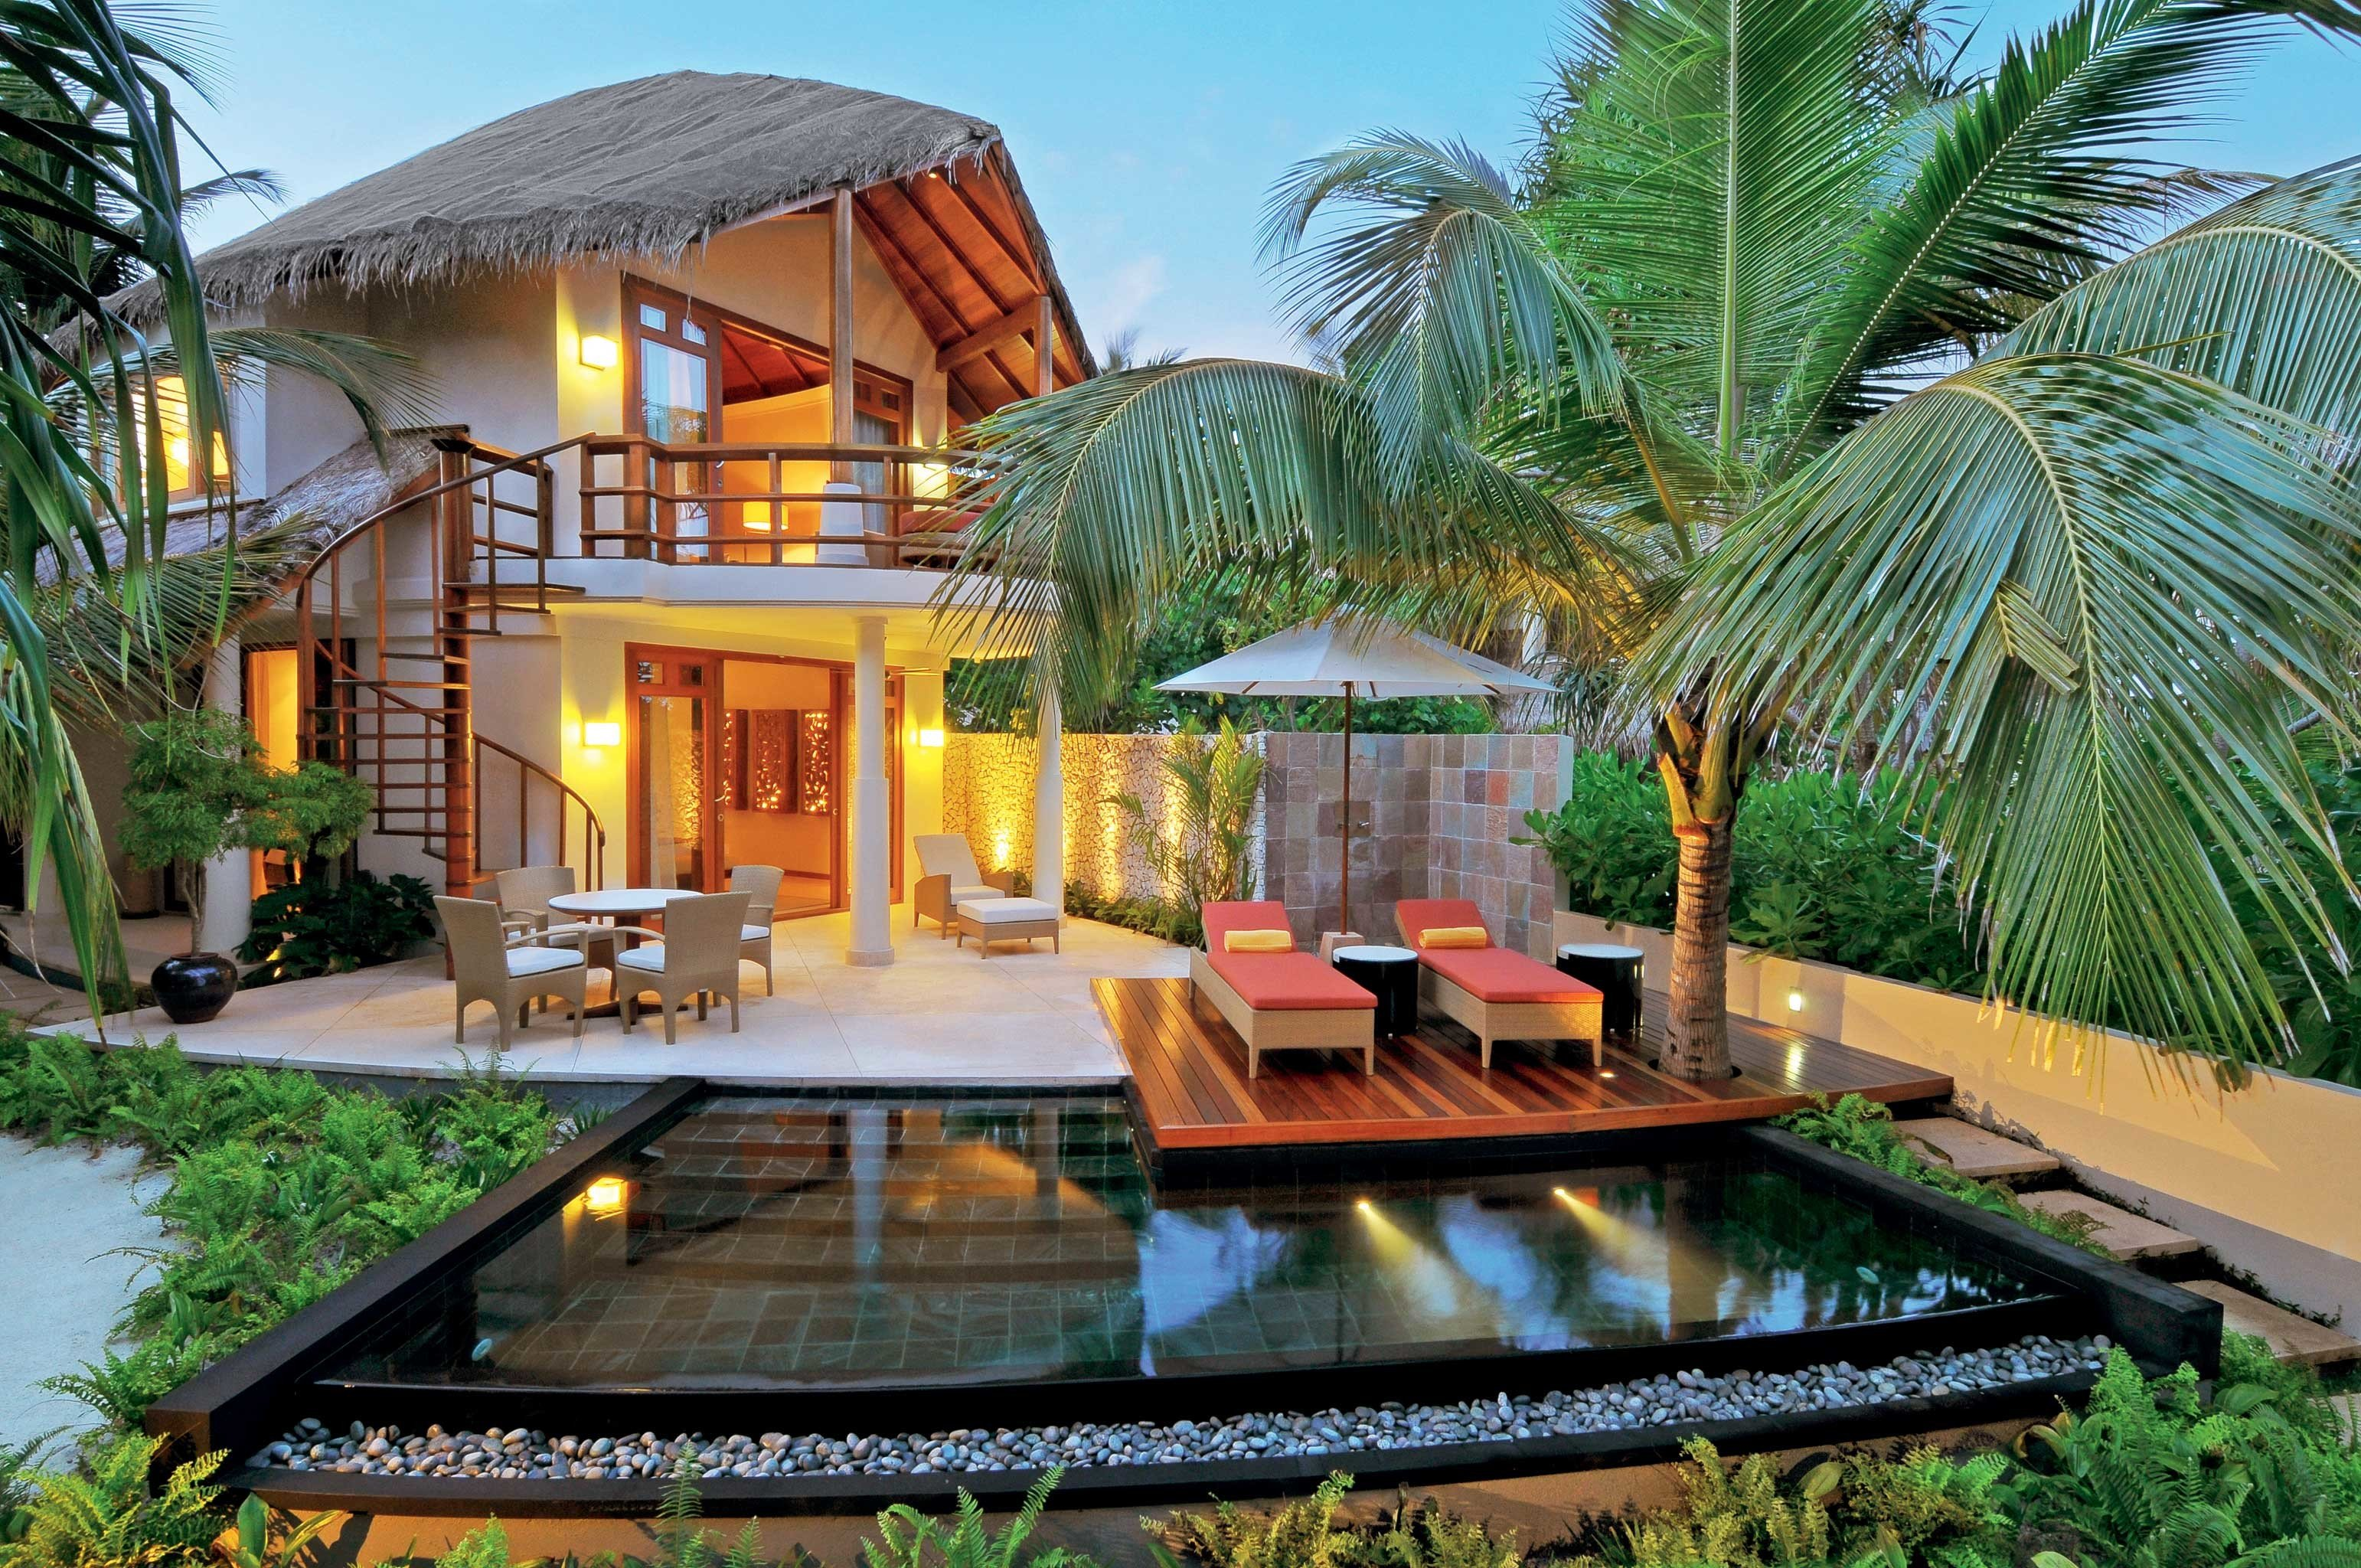 Elegant Lounge Luxury Modern Pool tree property swimming pool Resort backyard Villa home eco hotel Courtyard Jungle mansion hacienda palm plant